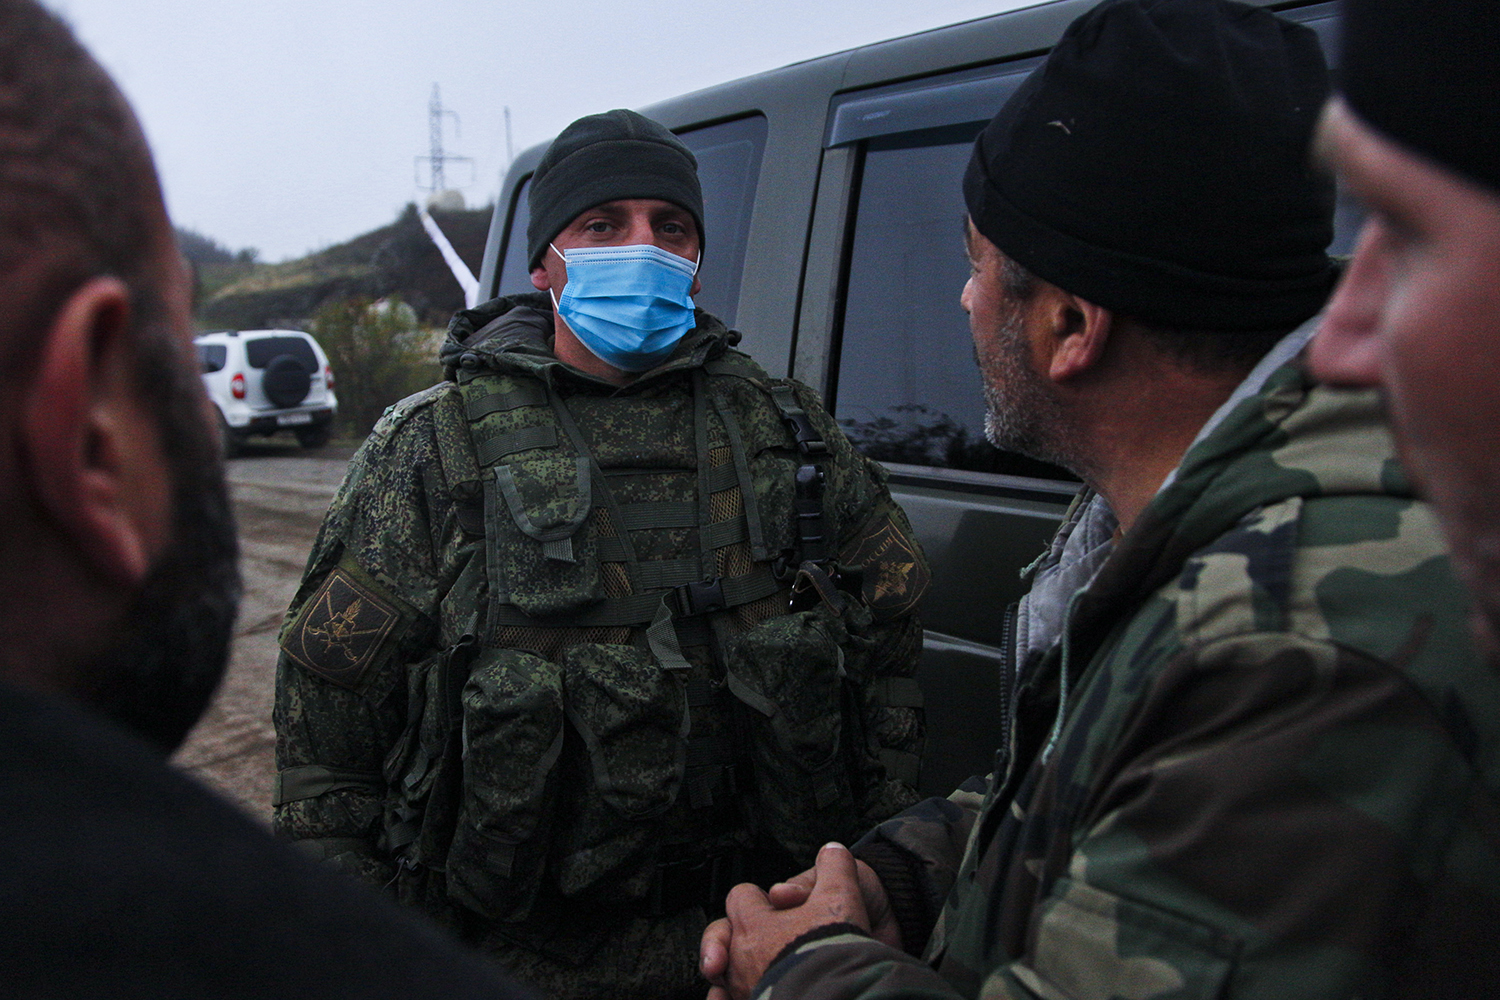 A Russian peacekeeper speaks with ethnic Armenian soldiers before the Azeri and Armenian sides exchange the bodies of fallen soldiers near Shushi on Nov. 13—a process coordinated by the Russian peacekeeping force, overseen by the International Committee of the Red Cross and stipulated by a term of the peace deal.